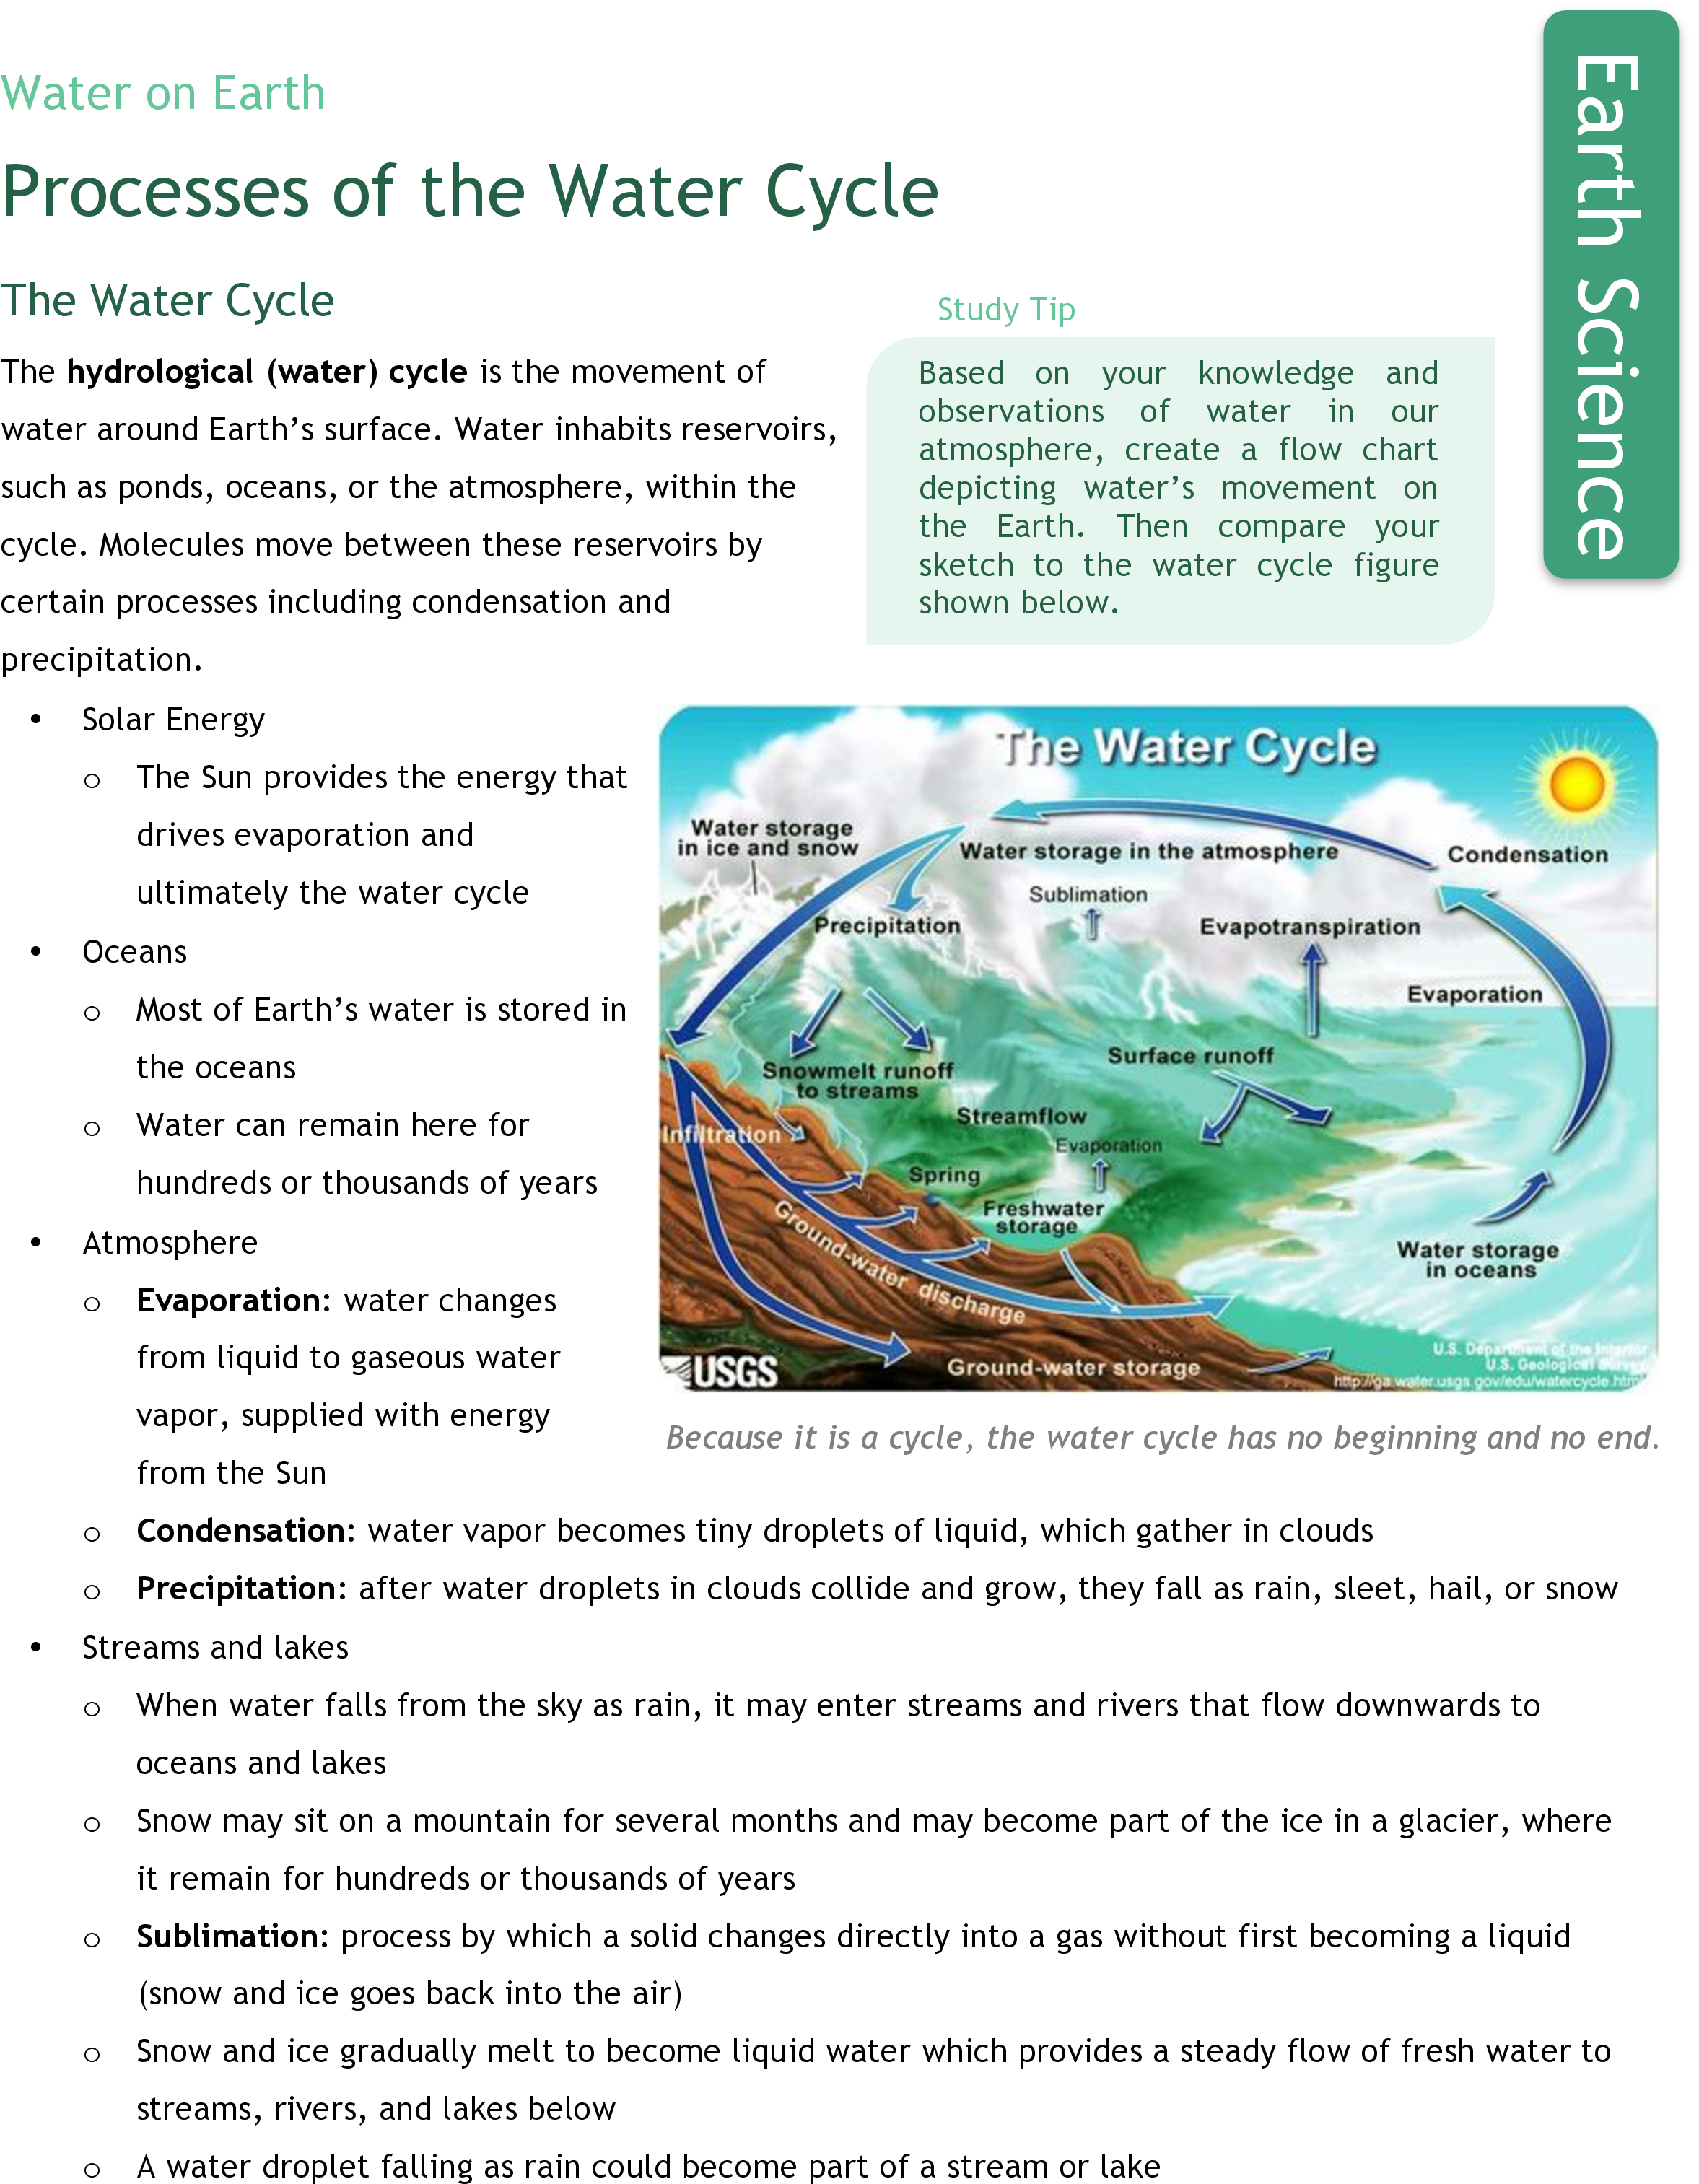 water cycle essay png water saving essay water cycle deposition  water cycle study water printable water cycle water cycle water cycle study water printable water cycle